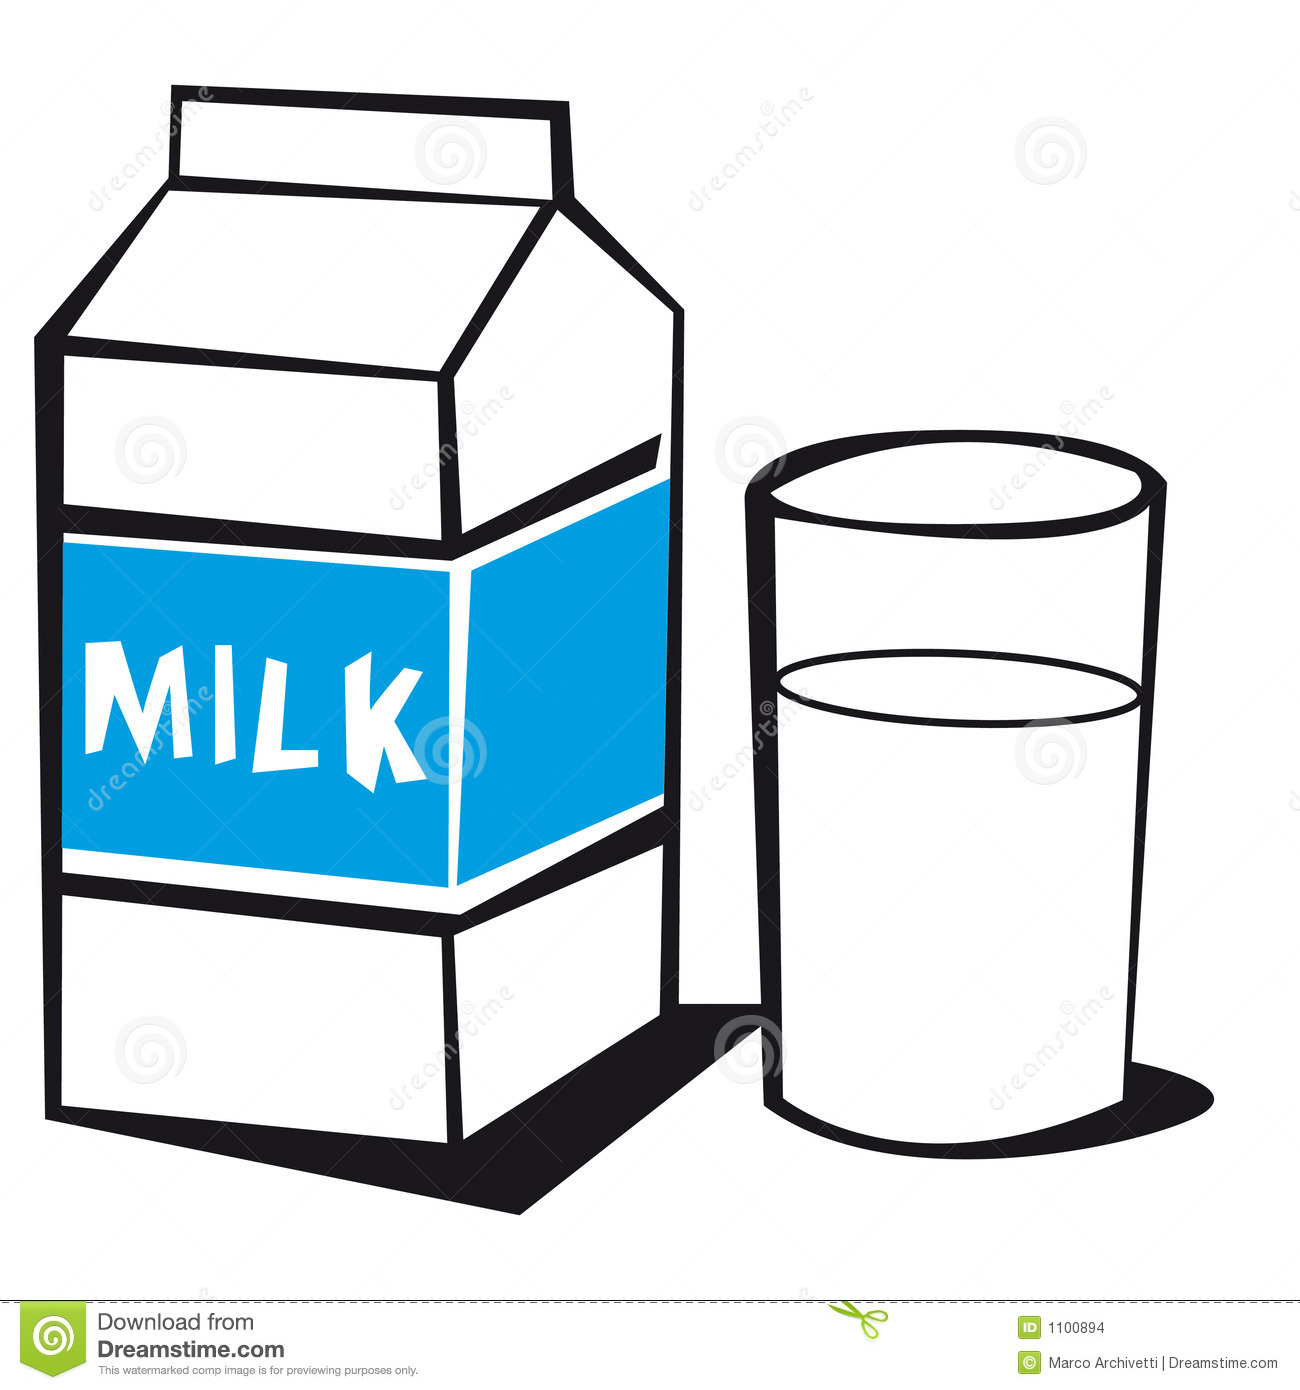 clipart of a glass of milk - photo #5